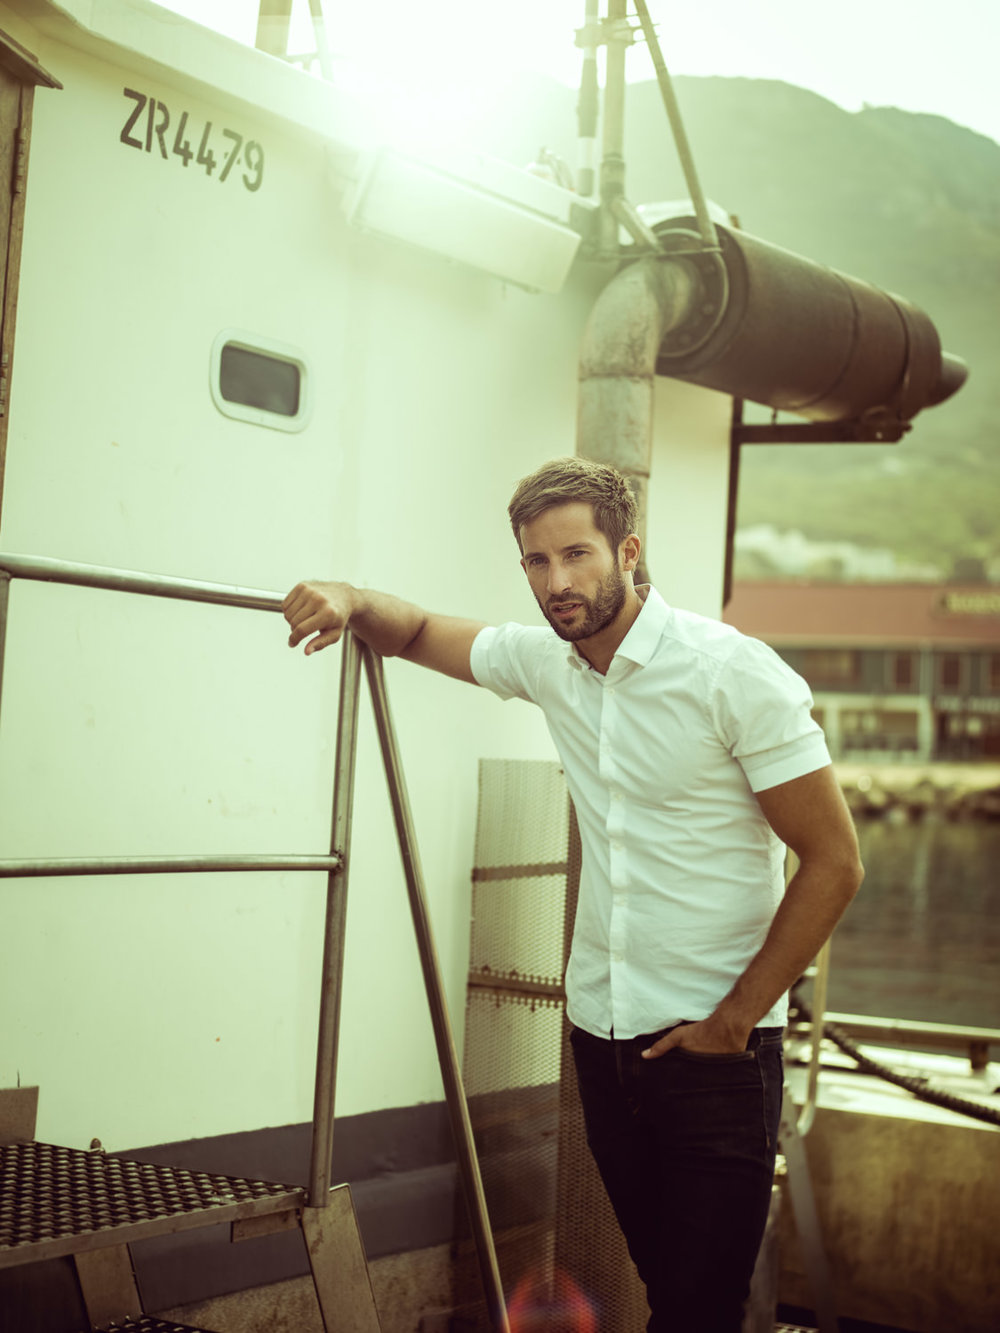 tim gerges the harbour - toby Cape Town Fashion photographer-4573105.jpg